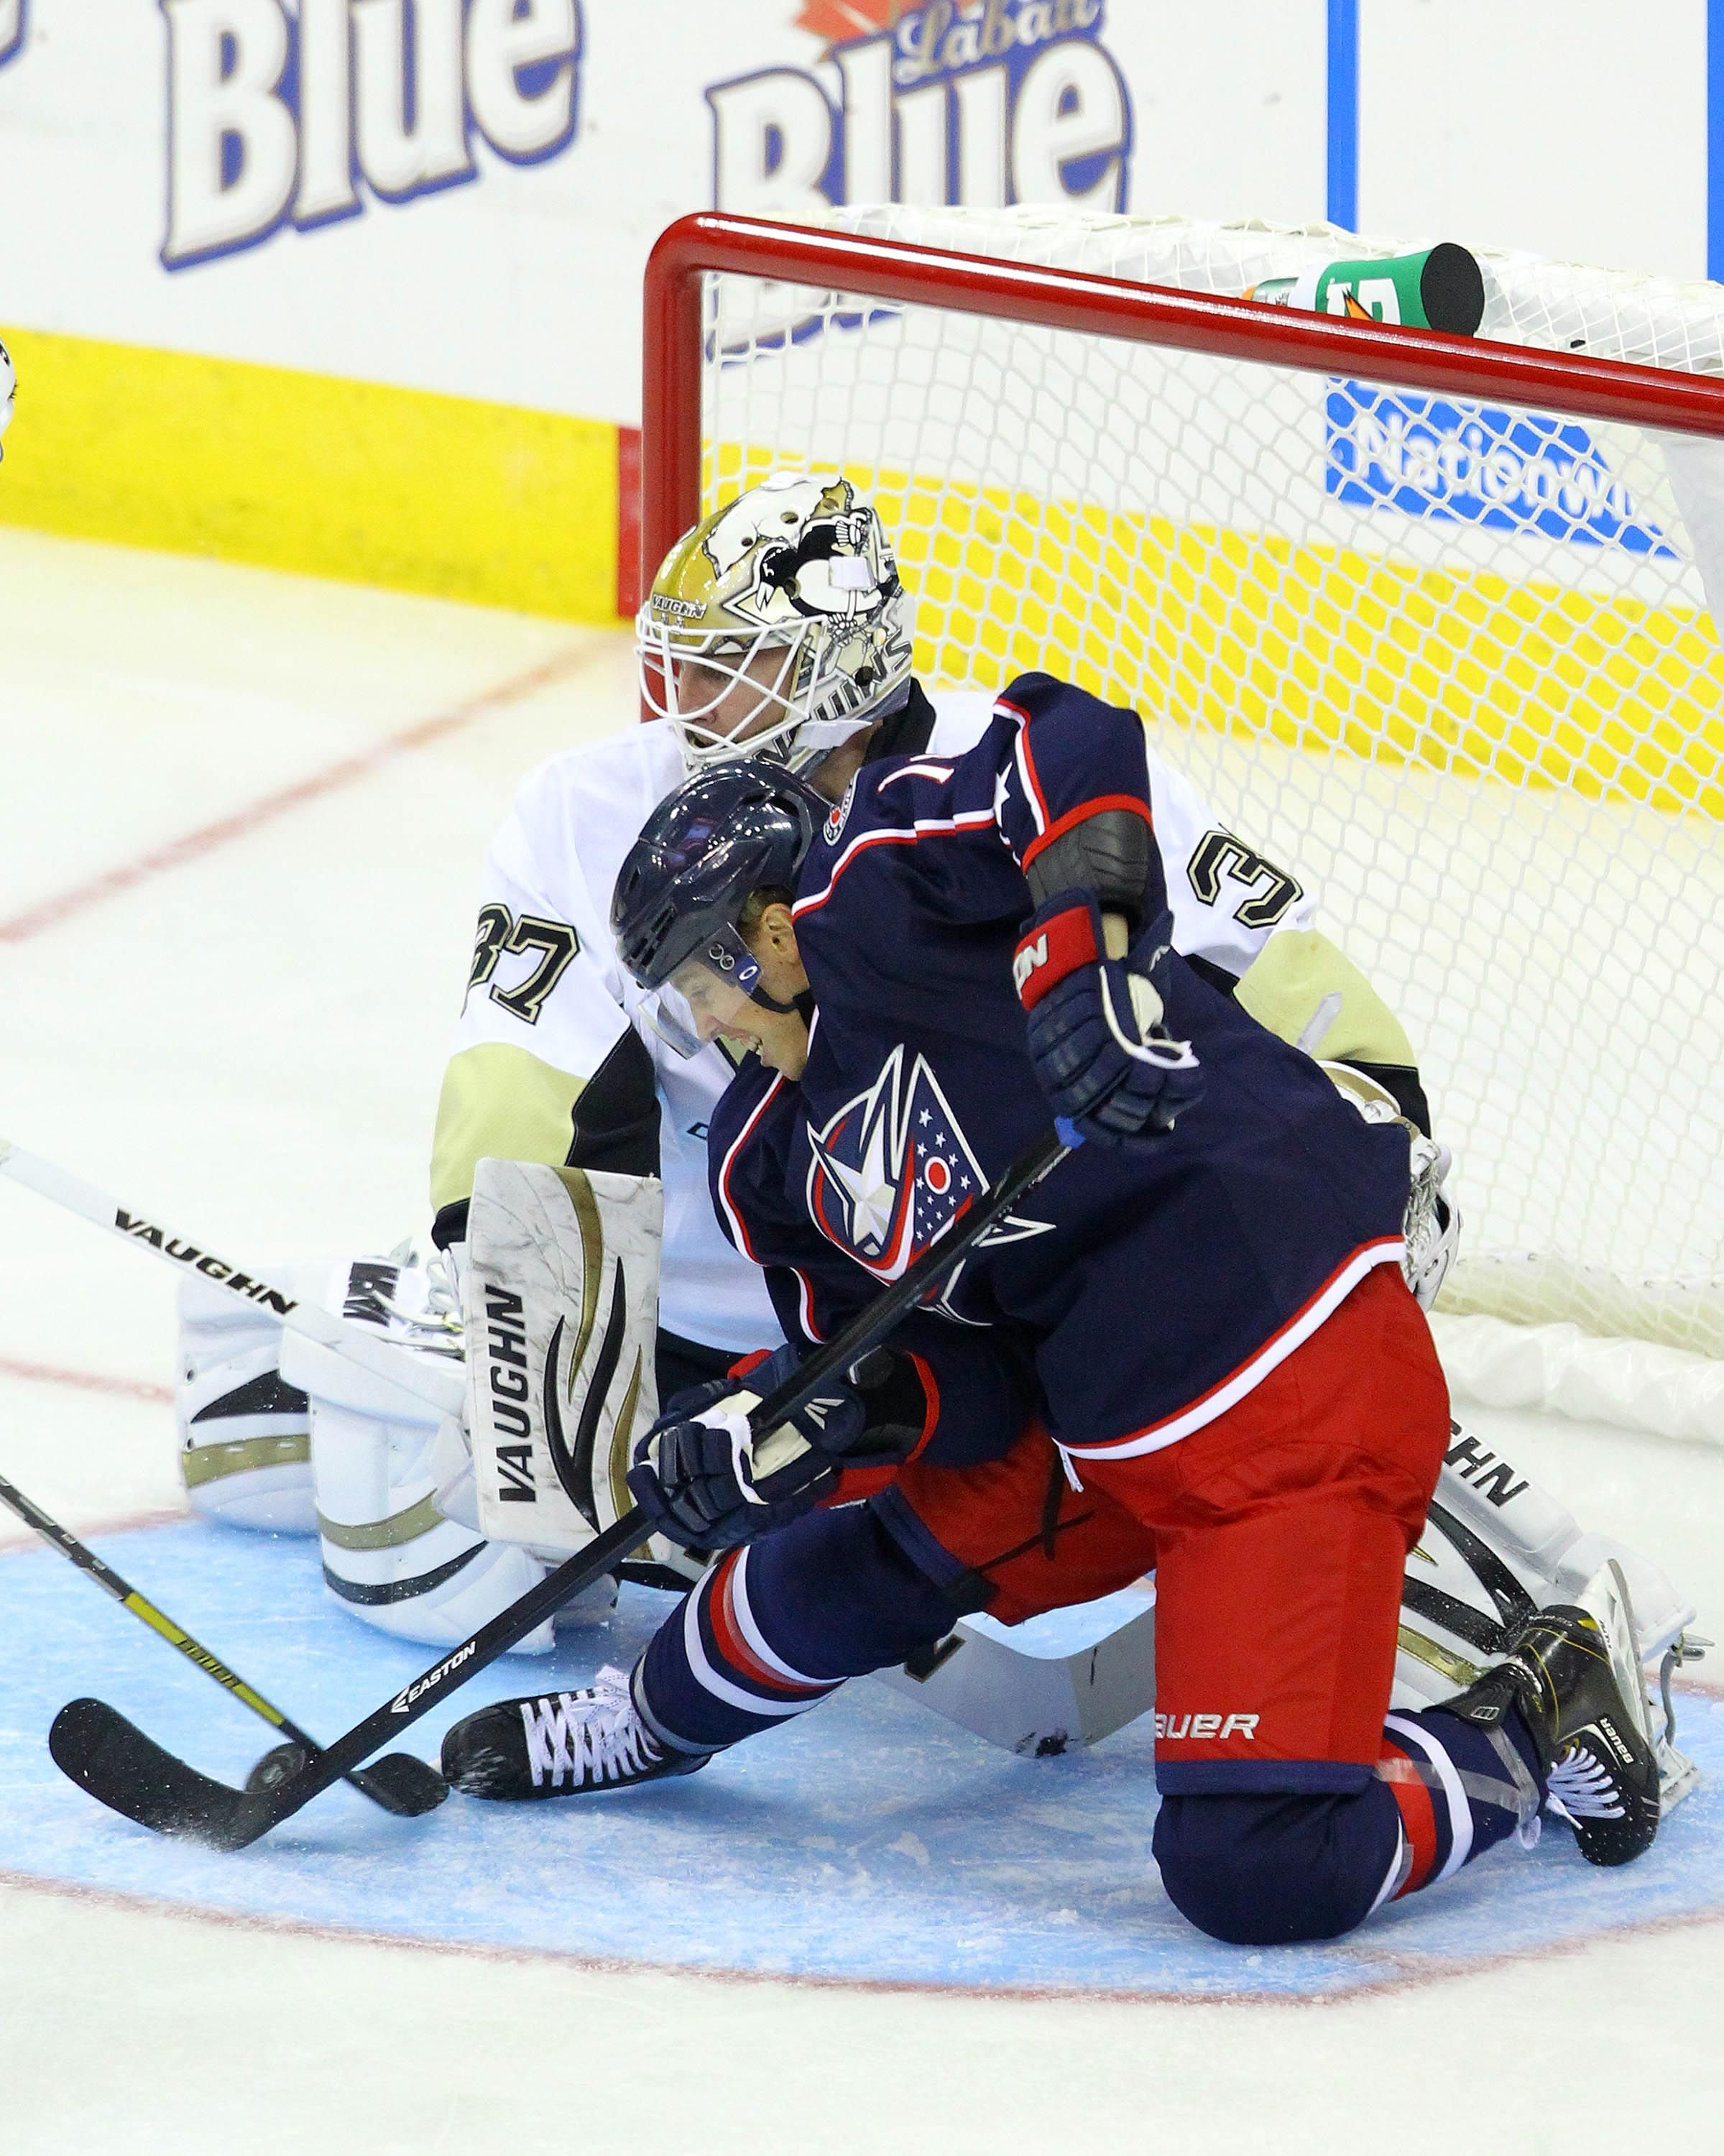 CrowdCam Hot Shot: Columbus Blue Jackets forward Cam Atkinson attempts to score against Pittsburgh Penguins goaltender Jeff Zatkott during the 3rd period of the game at Nationwide Arena. Photo by Rob Leifheit